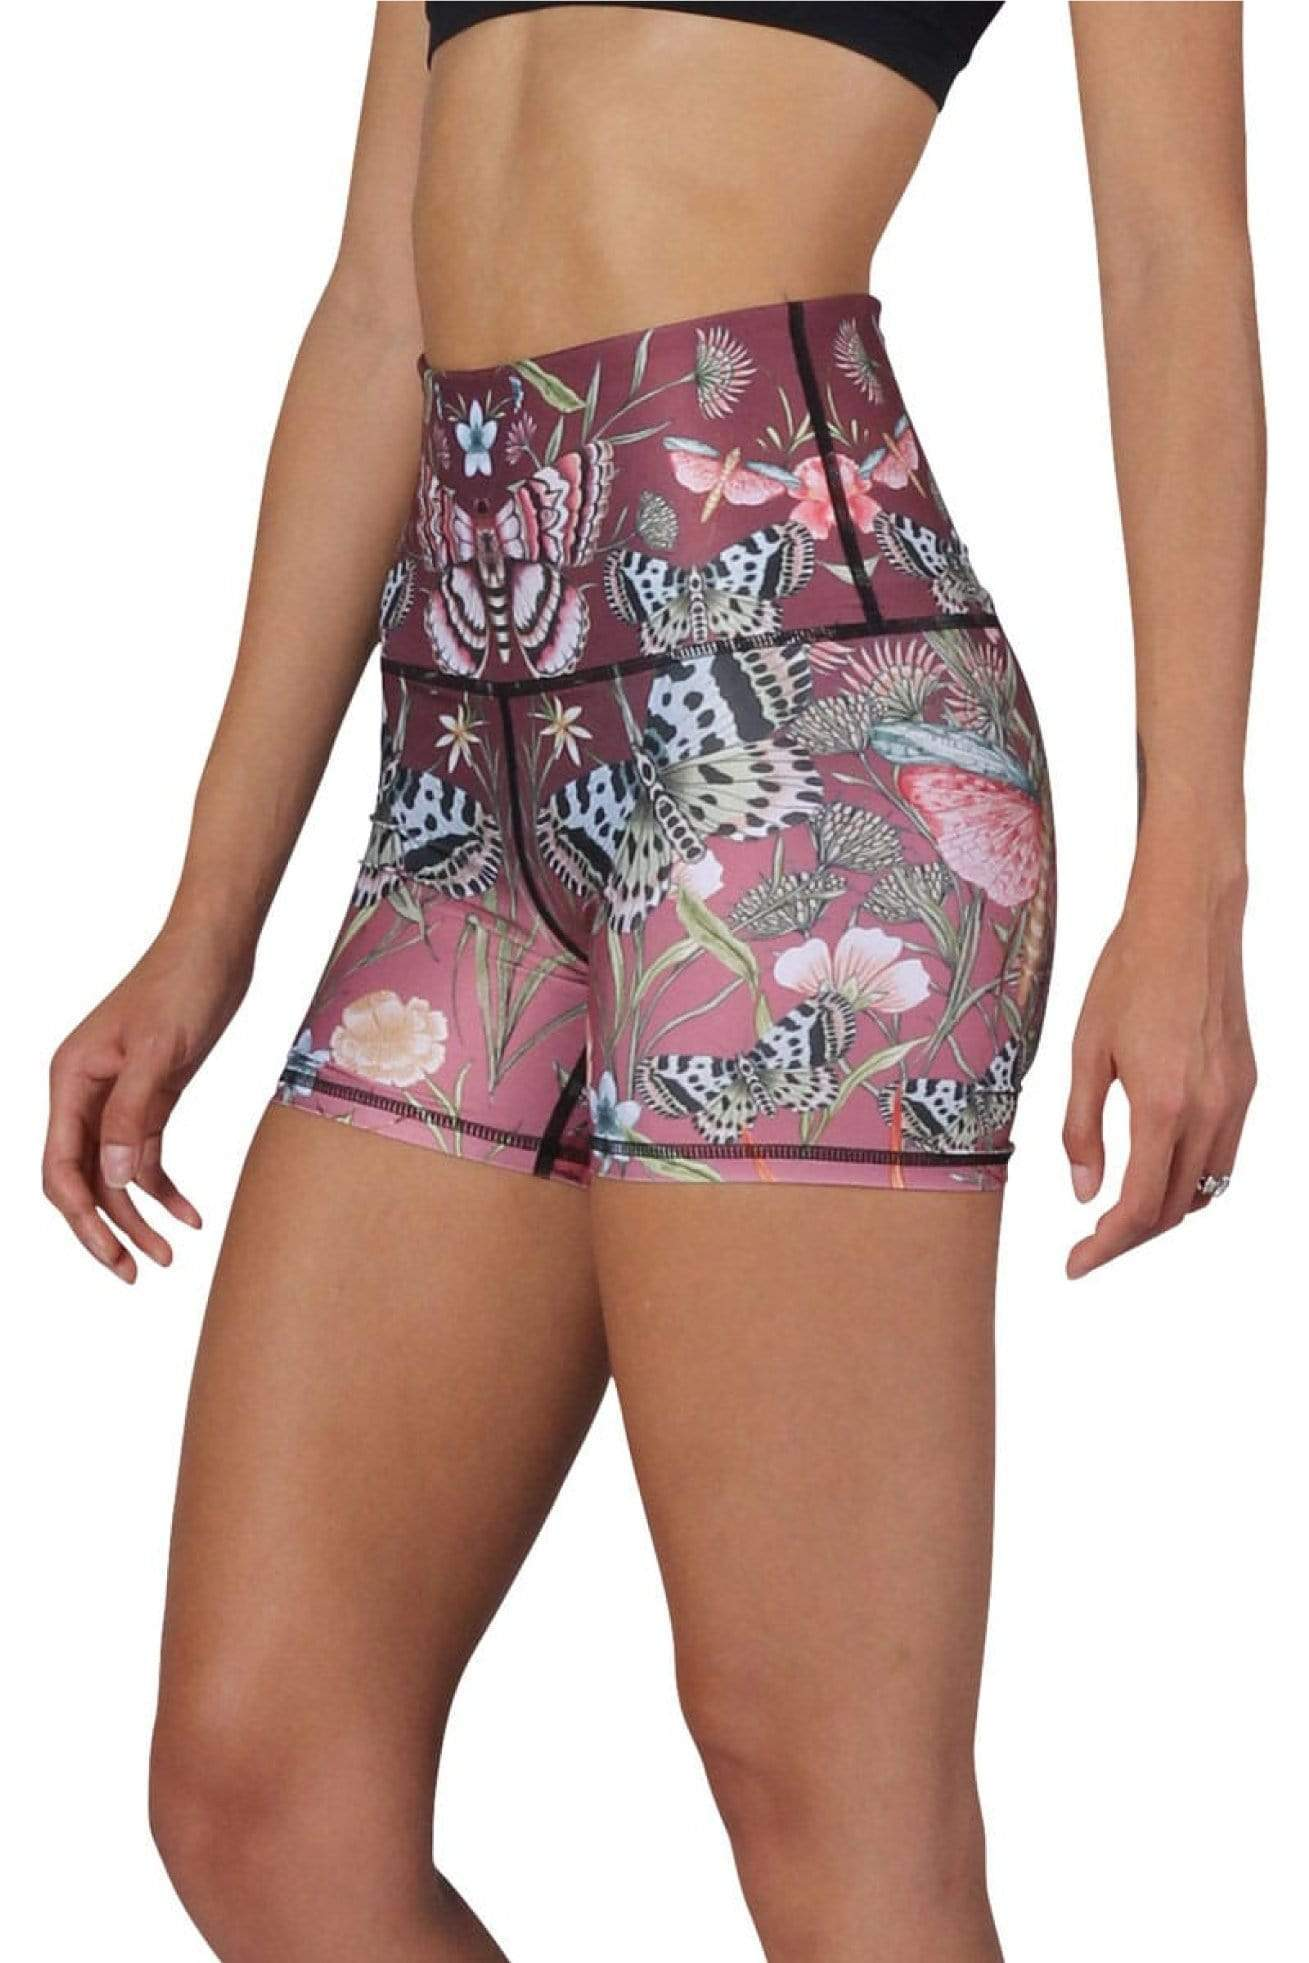 Yoga Democracy Shorts Joey Short in Pretty in Pink